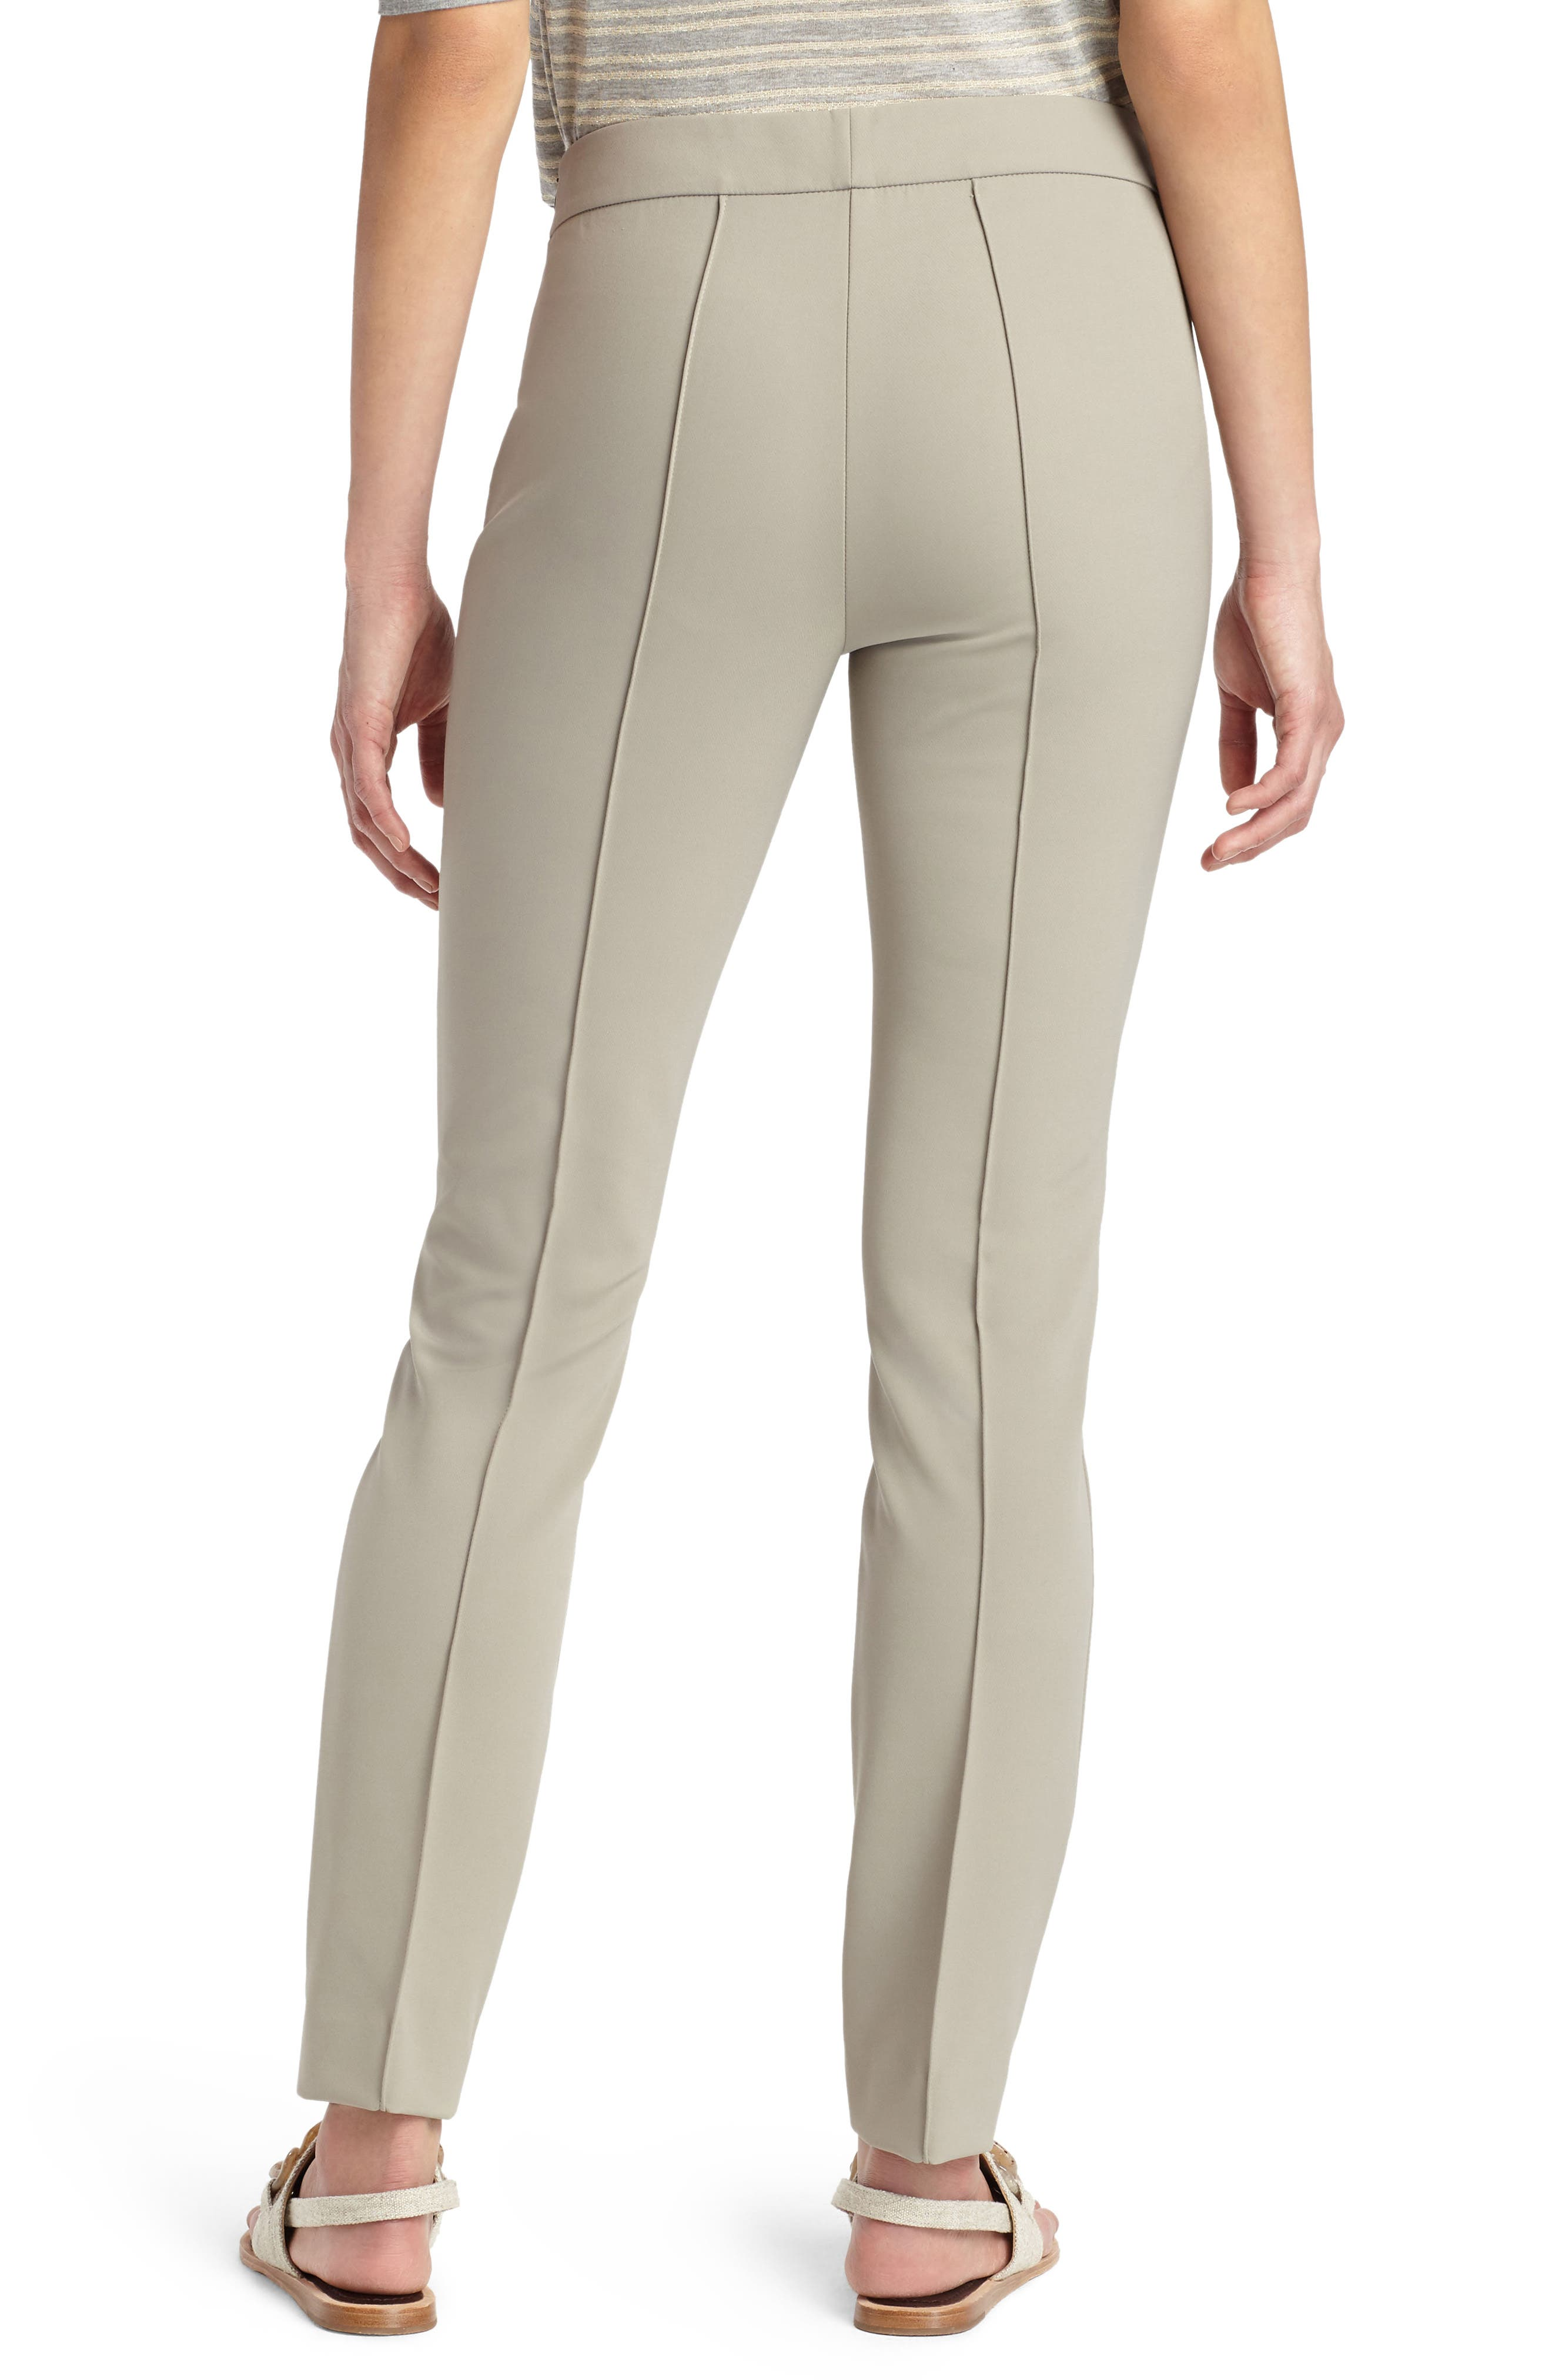 LAFAYETTE 148 NEW YORK, 'Gramercy' Acclaimed Stretch Pants, Alternate thumbnail 2, color, PARTRIDGE